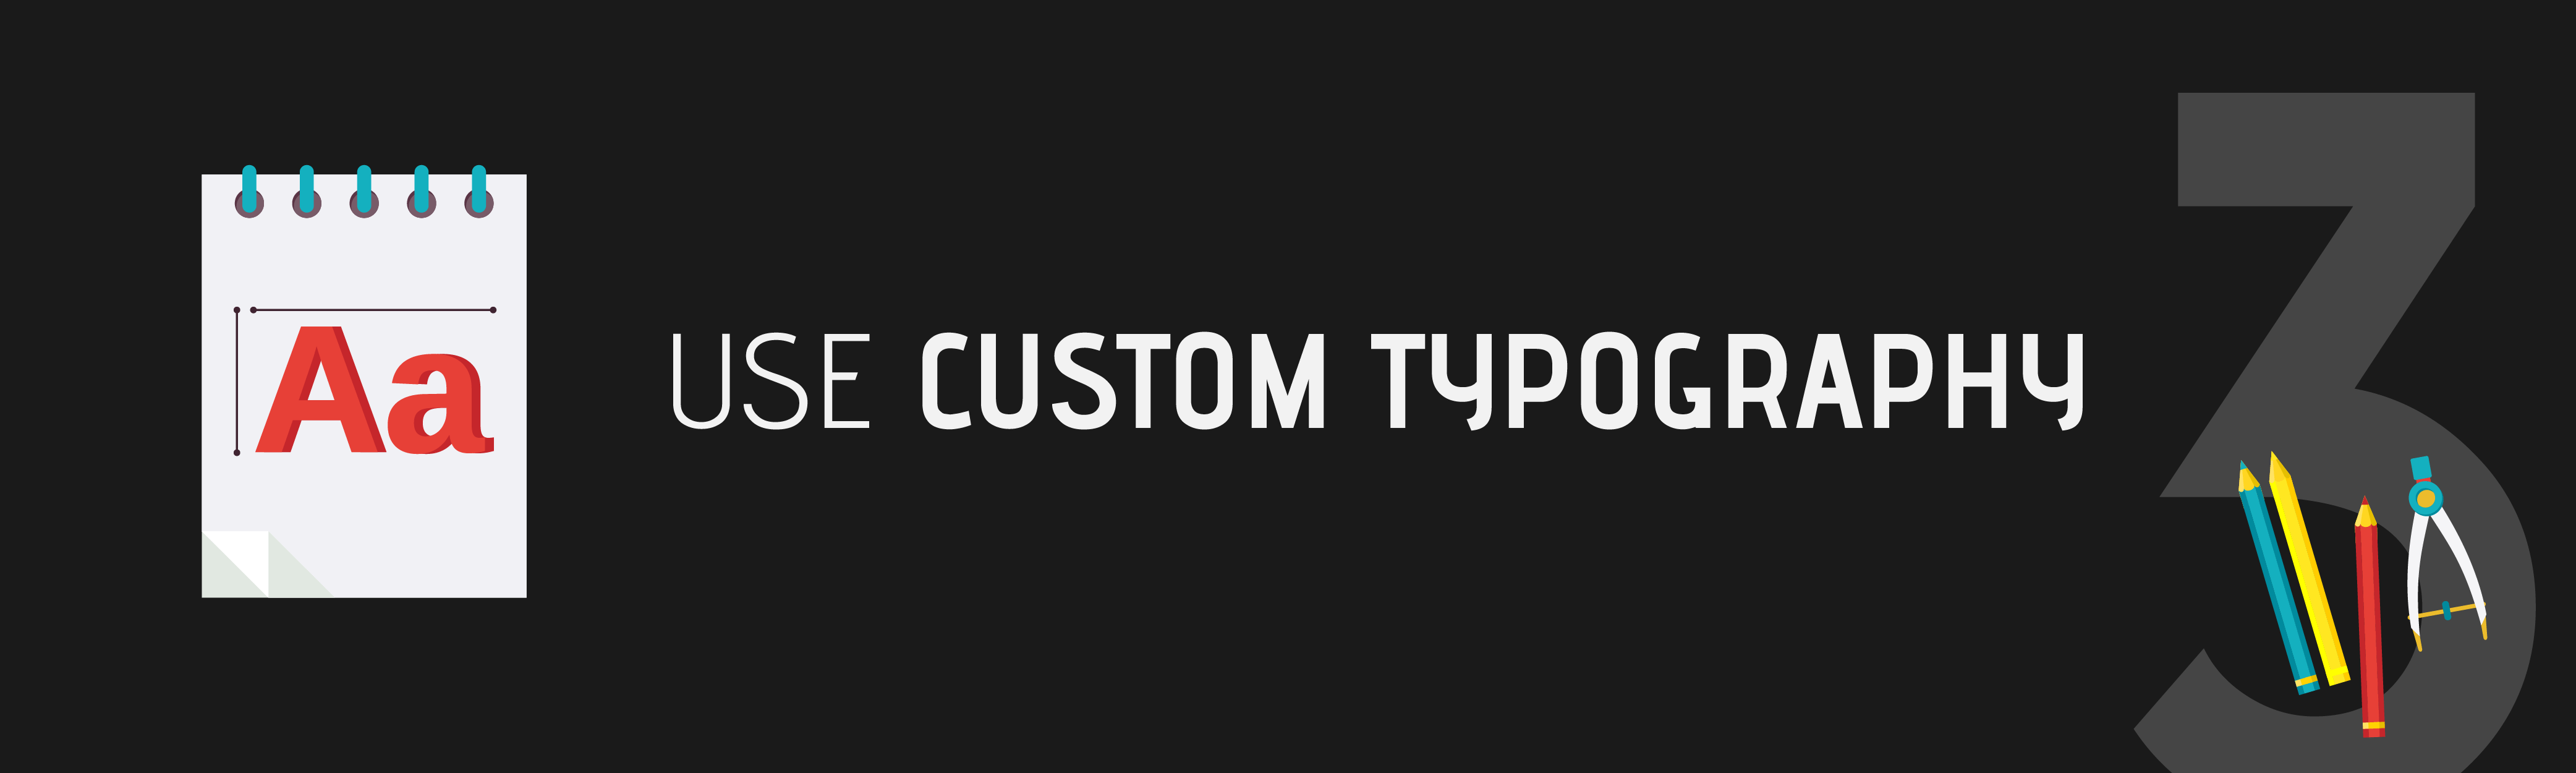 Step 3: Use Custom Typography